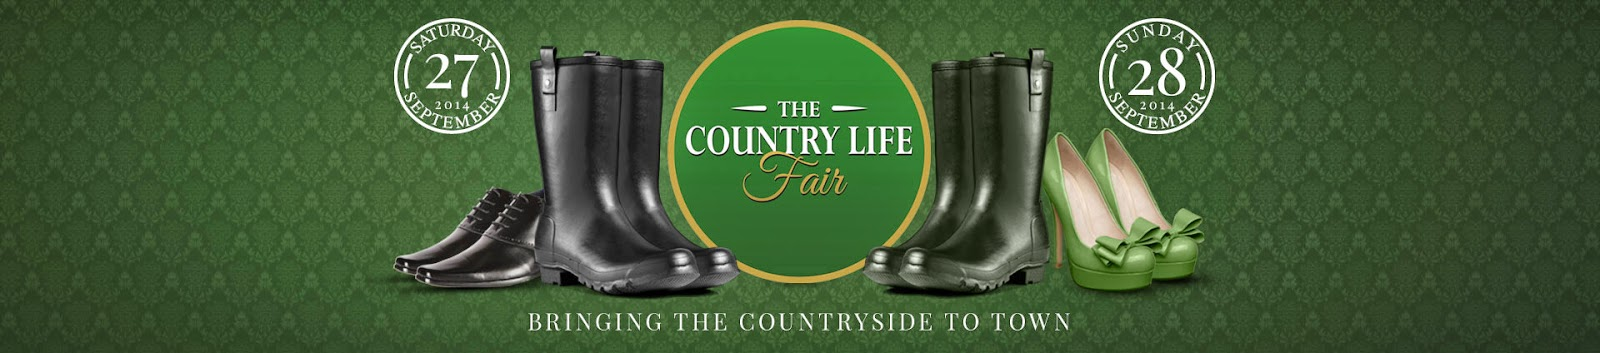 www.countrylifefair.co.uk